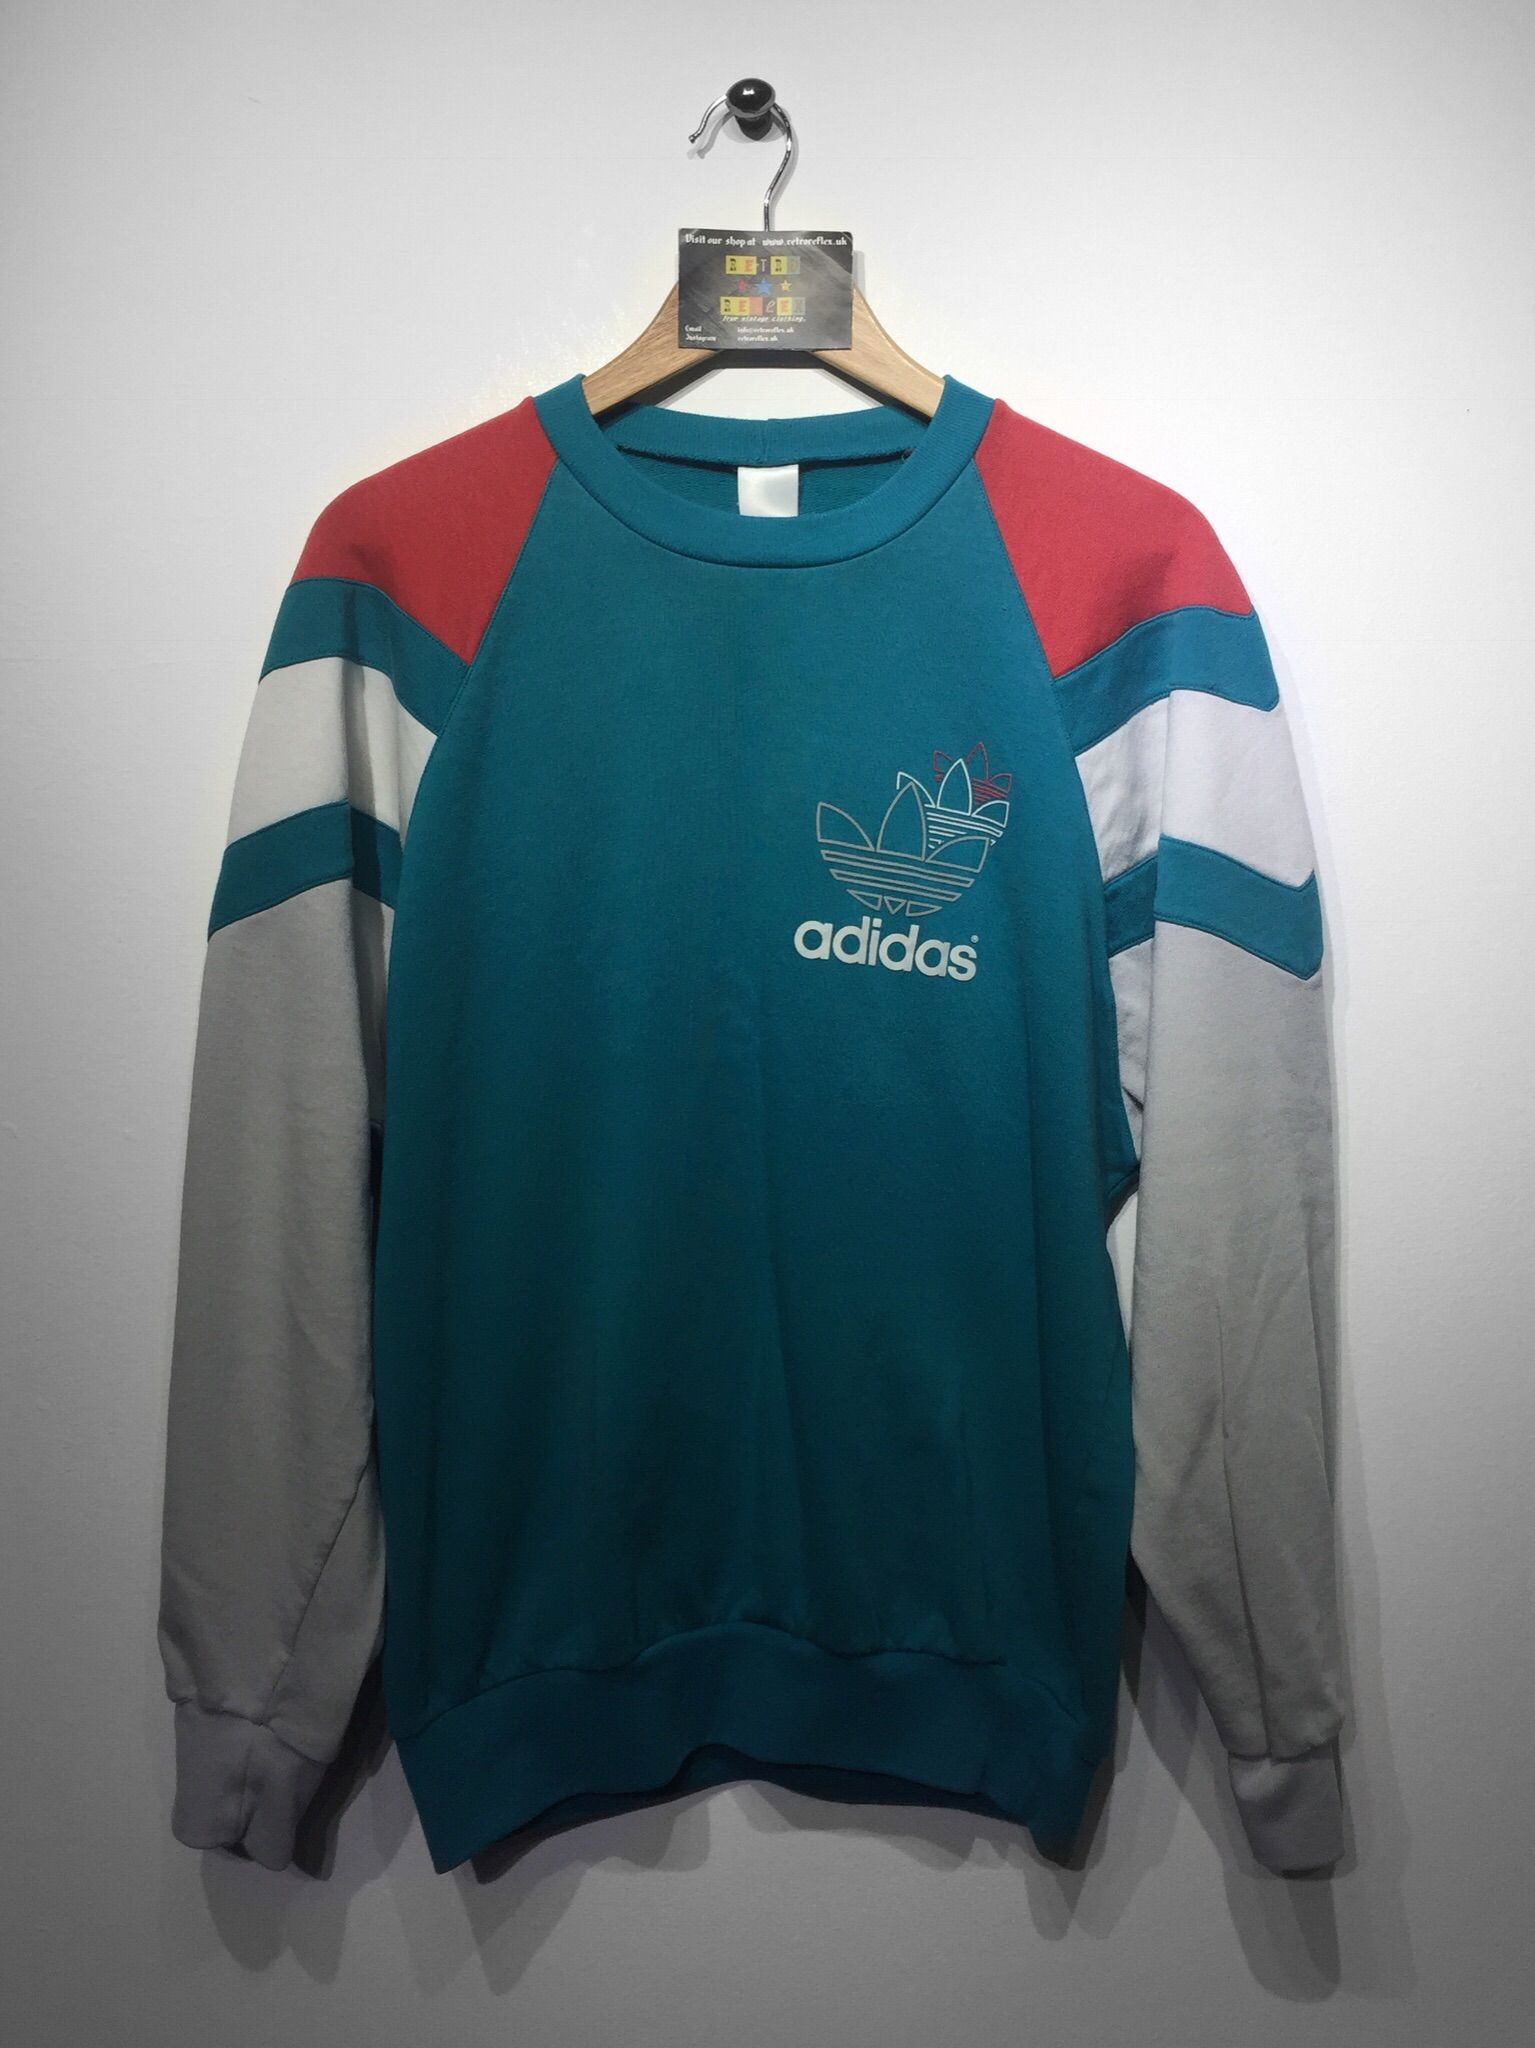 Adidas sweatshirt size XLarge(but Fits oversized) £36